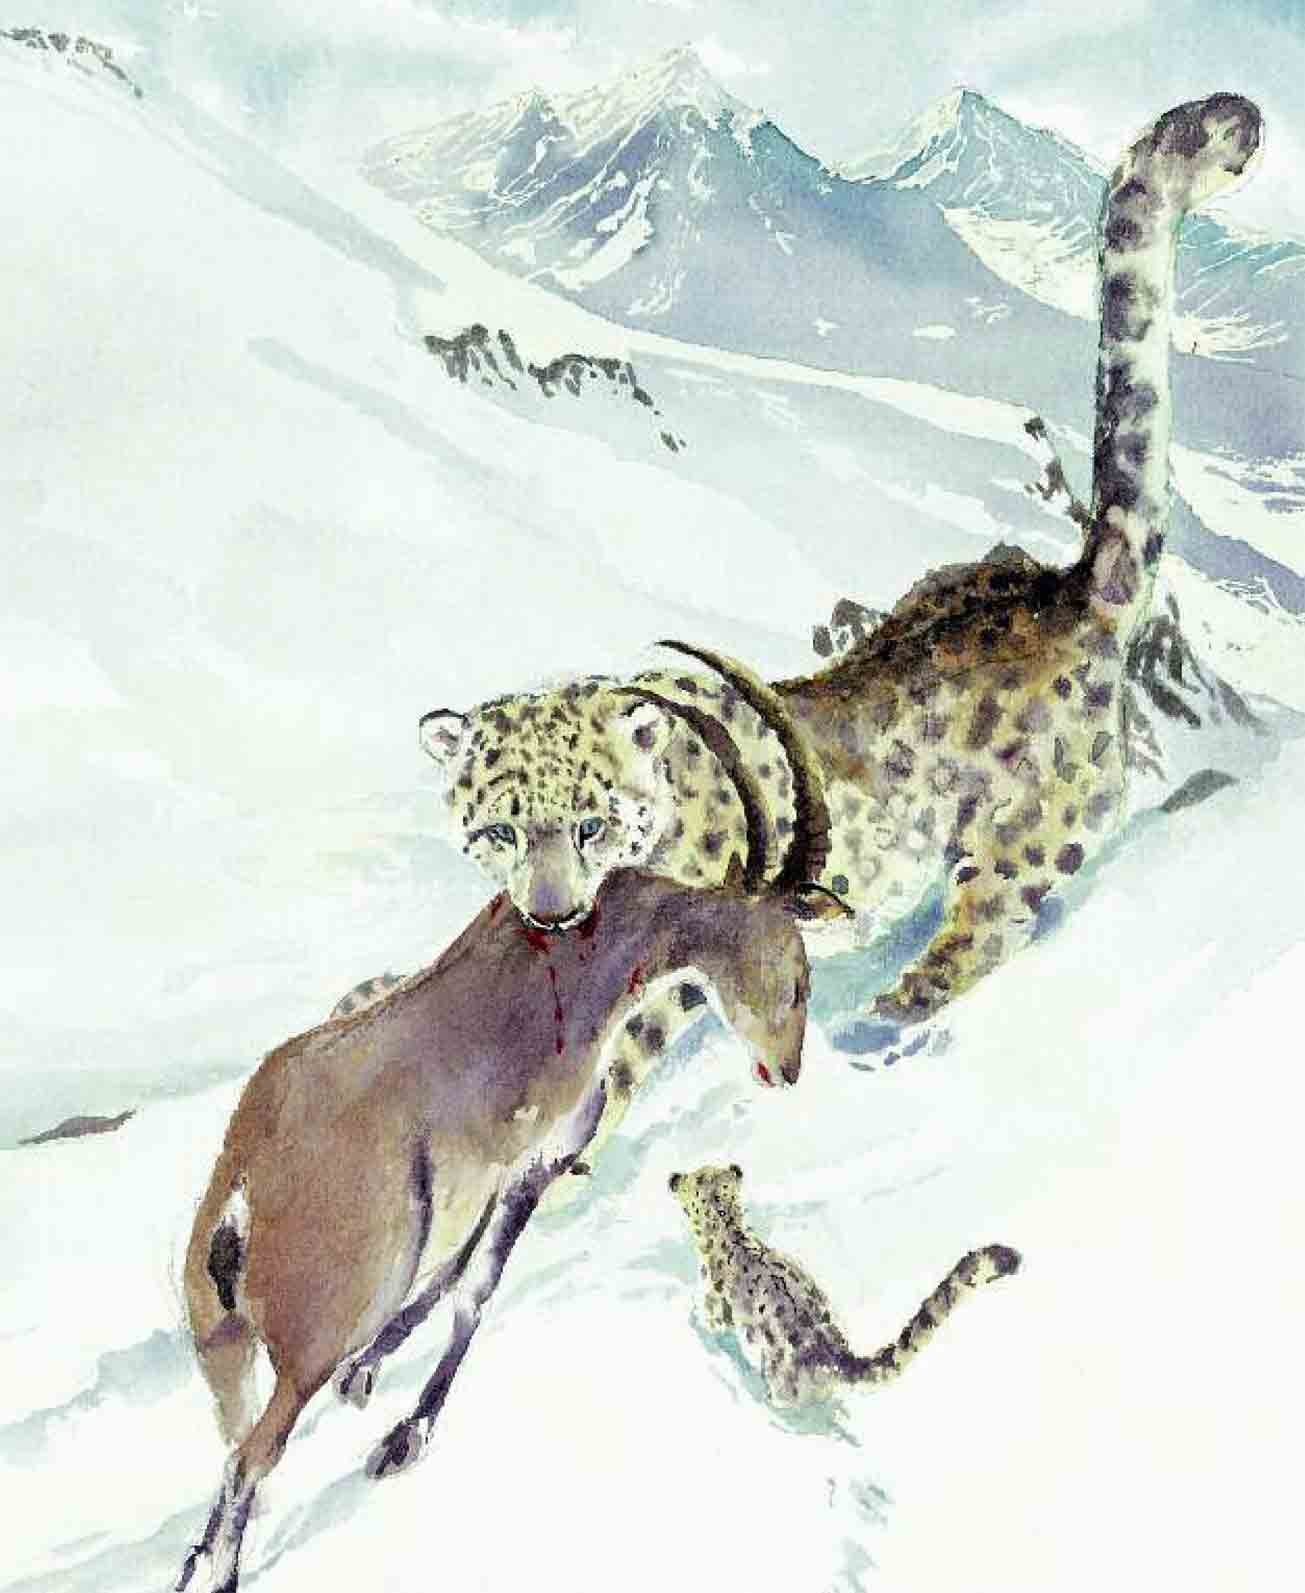 Snow leopard hunting prey - photo#1